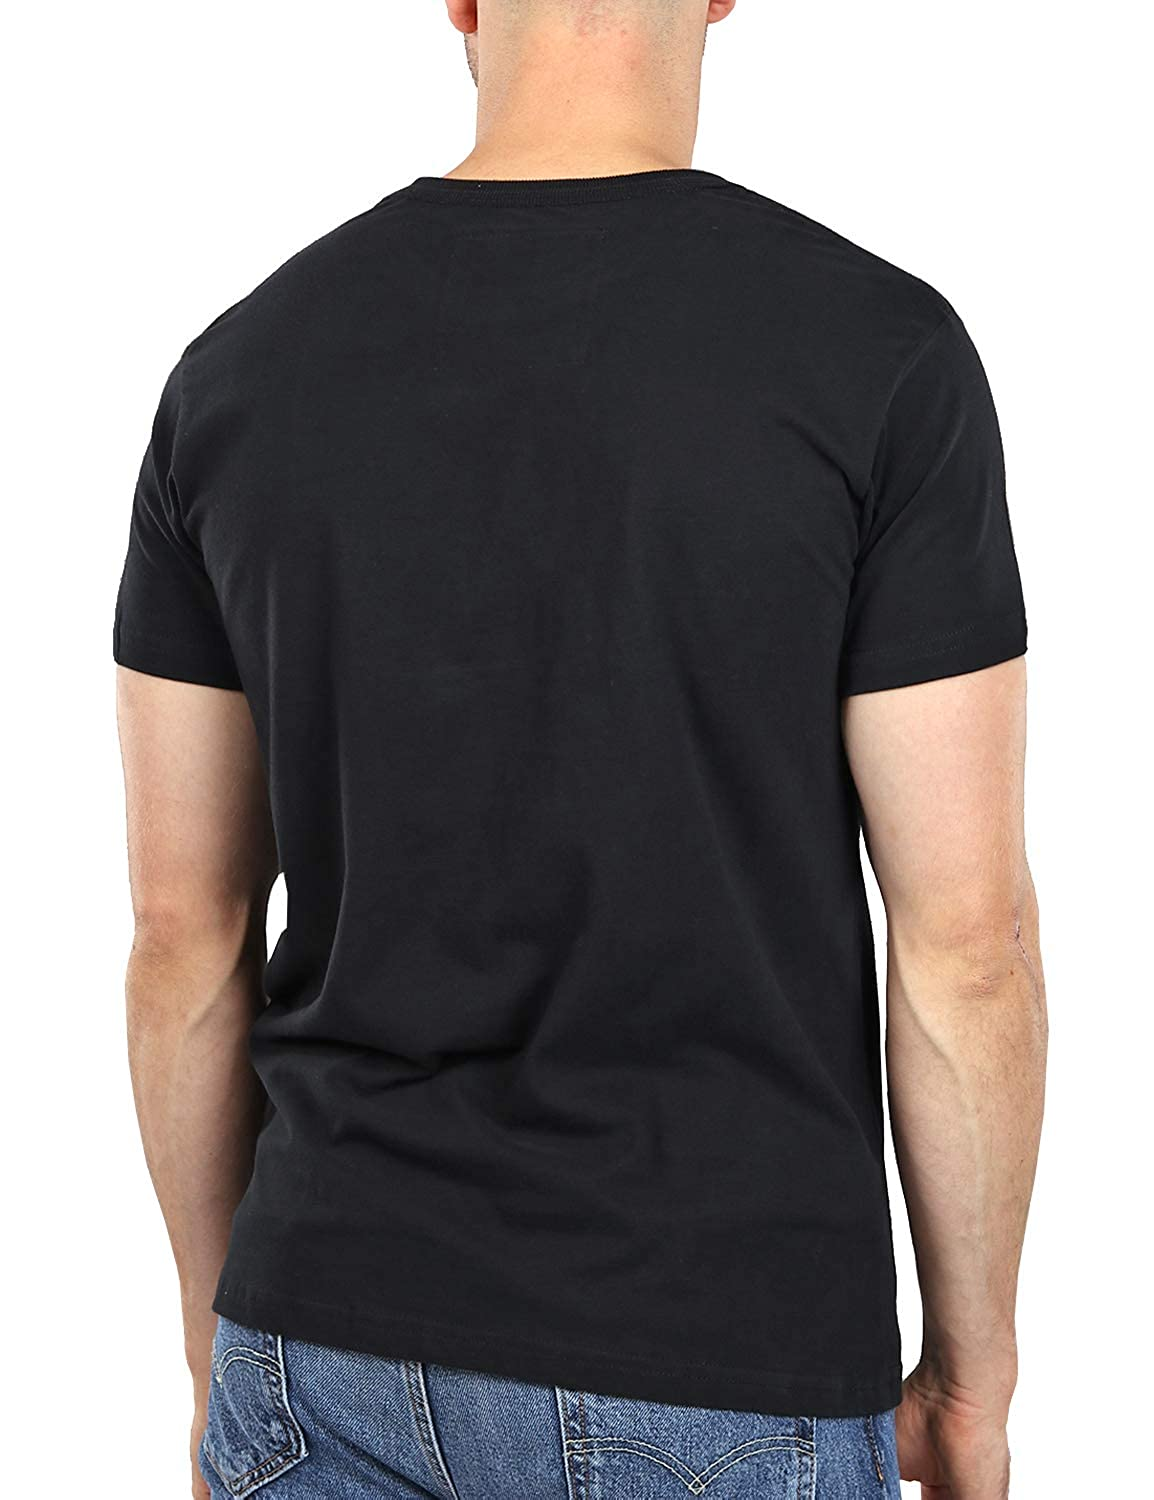 f2ef3df1515382 Muscle Fit Basics Men's Heavyweight Crew Round Neck Fitted Plain T-Shirt -  7 Colours - S M L XL XXL